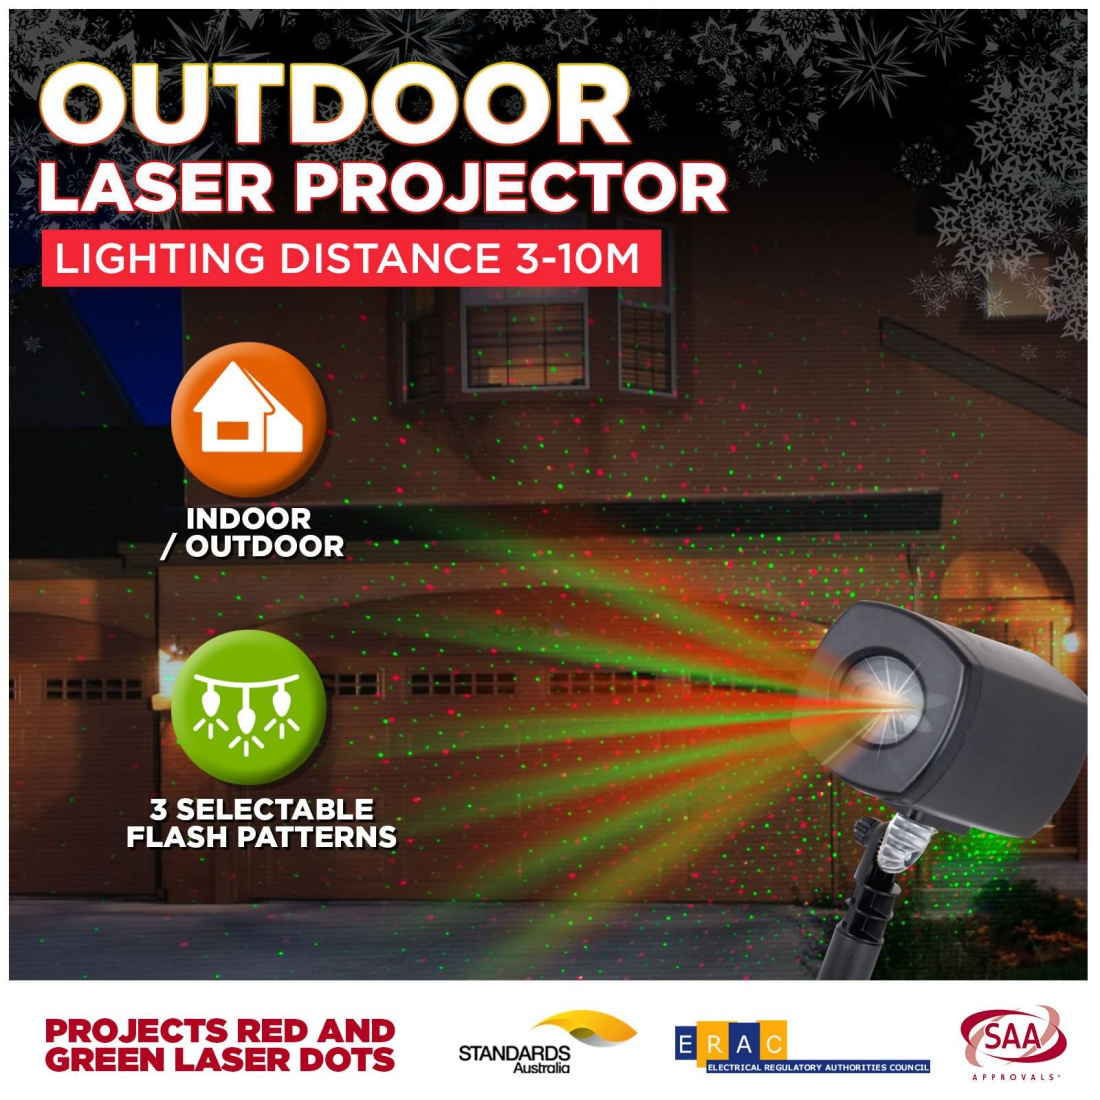 CLEARANCE Laser Light Projector Red Green Dots Flashing Garden Outdoor Christmas Decor